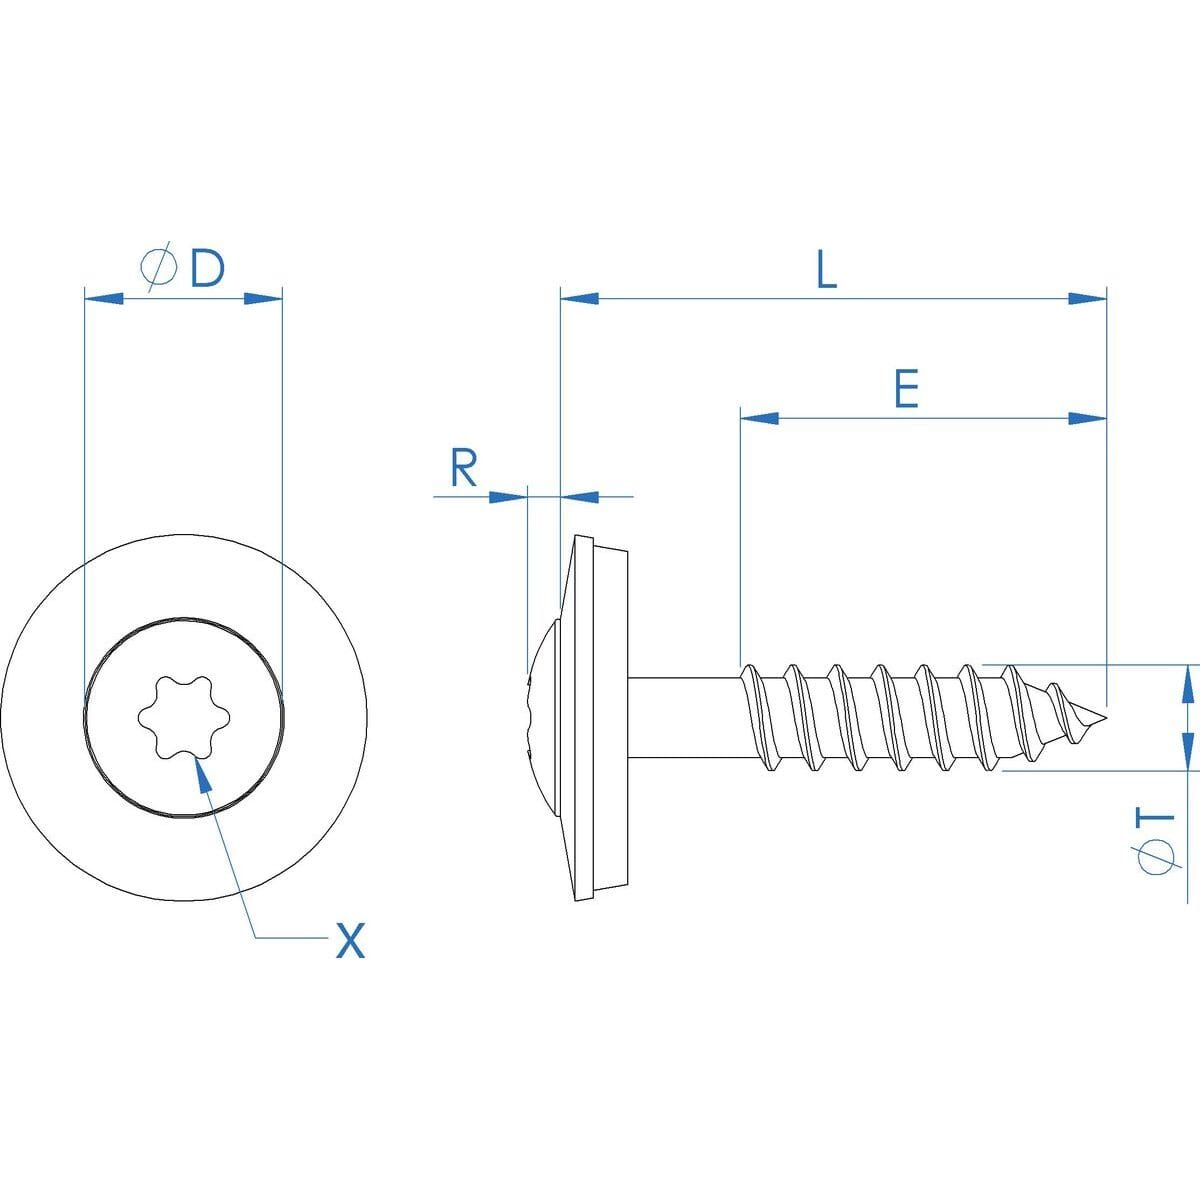 No.9 (4.5mm) x 45mm x 25mm Sealing Raised Torx Countersunk Wood Screws - Stainless Steel (A2) Drawing